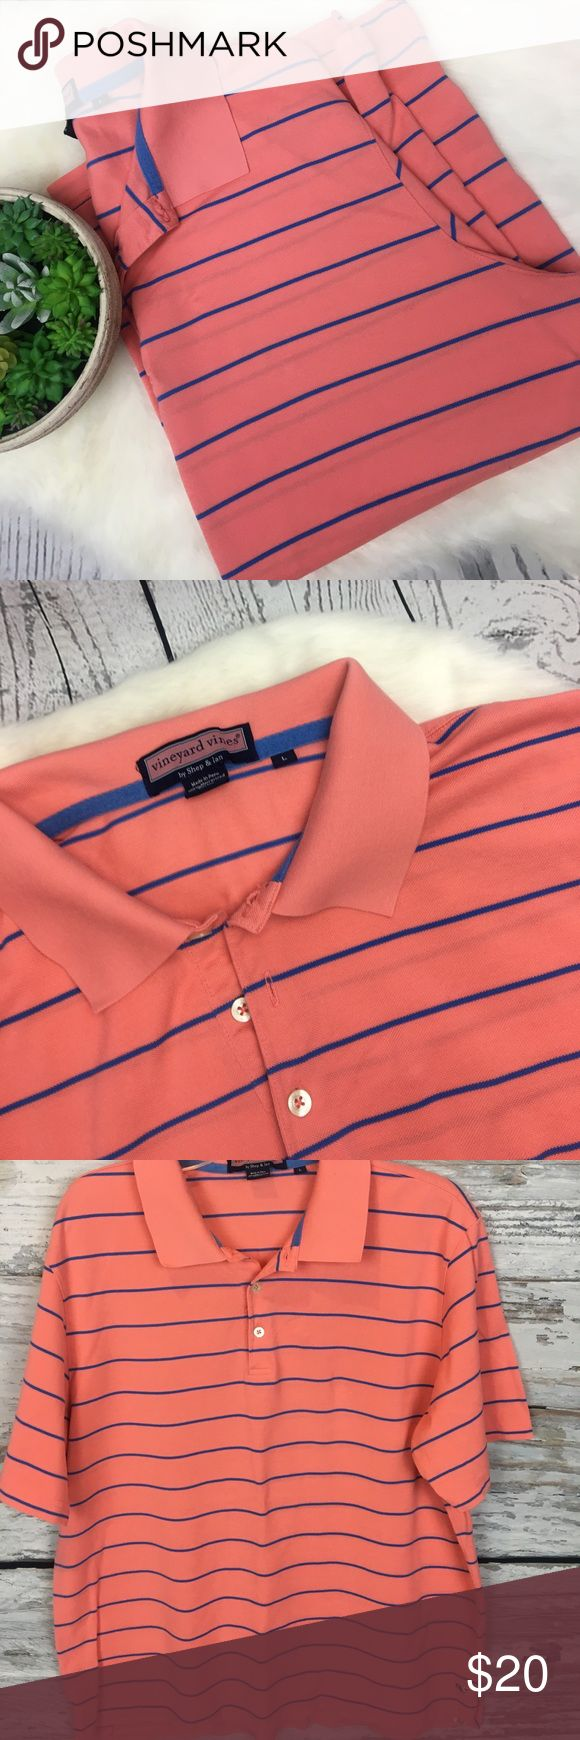 """Vineyard Vines Salmon Striped Polo Shirt Sz Large Perfect summer colors!!! Vineyard Vines Men's Polo Size Large. Salmon coral color with blue pinstripes. Classic whale logo at bottom. Excellent condition from a smoke free home!! Measures approximately 24"""" armpit to armpit. Vineyard Vines Shirts Polos"""